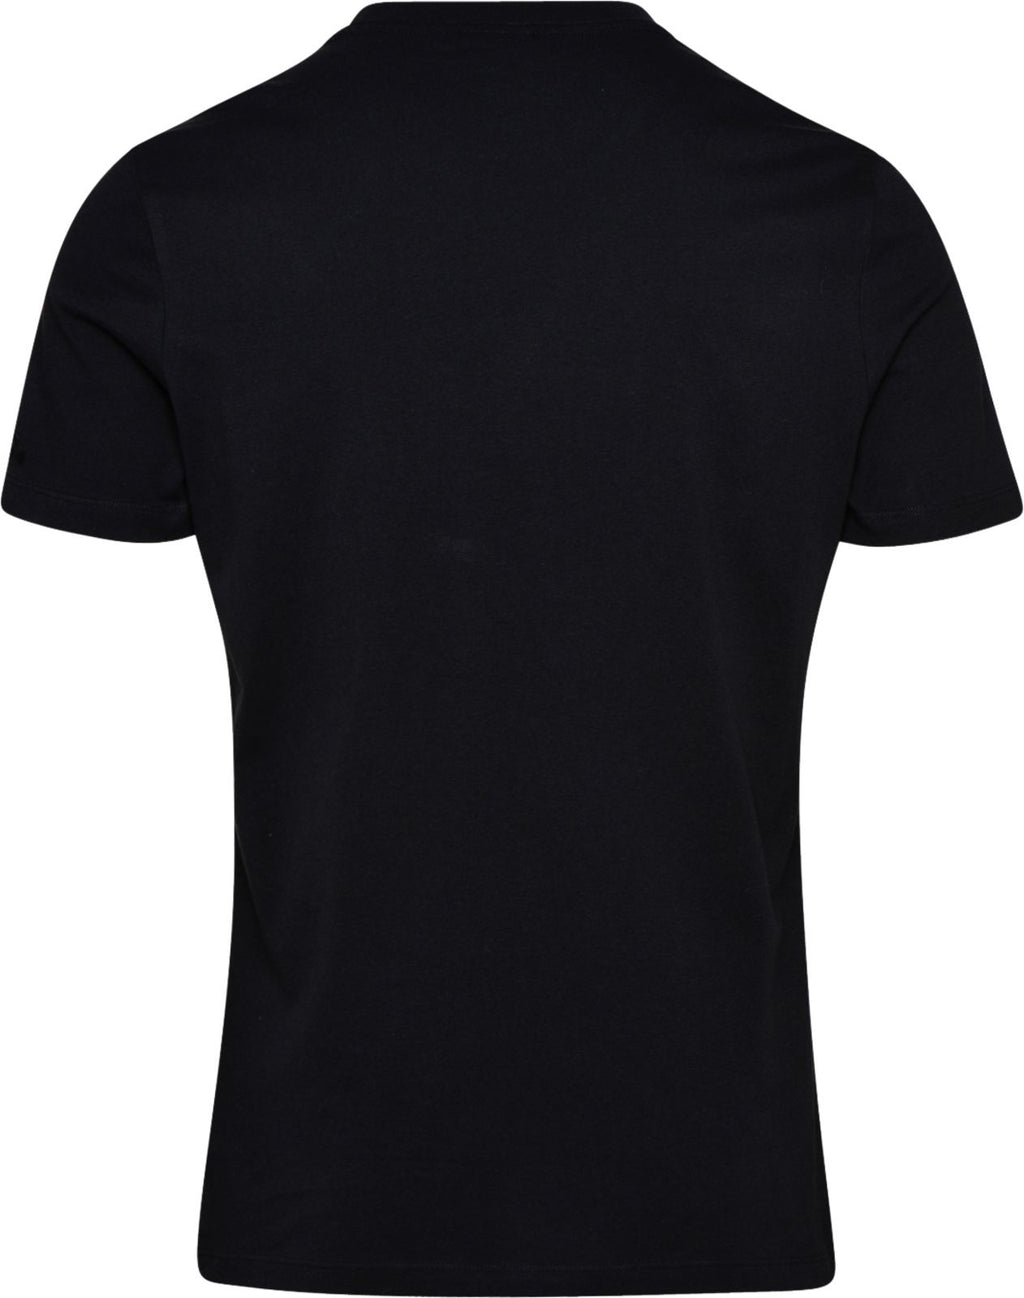 Diadora BL T-Shirt Black